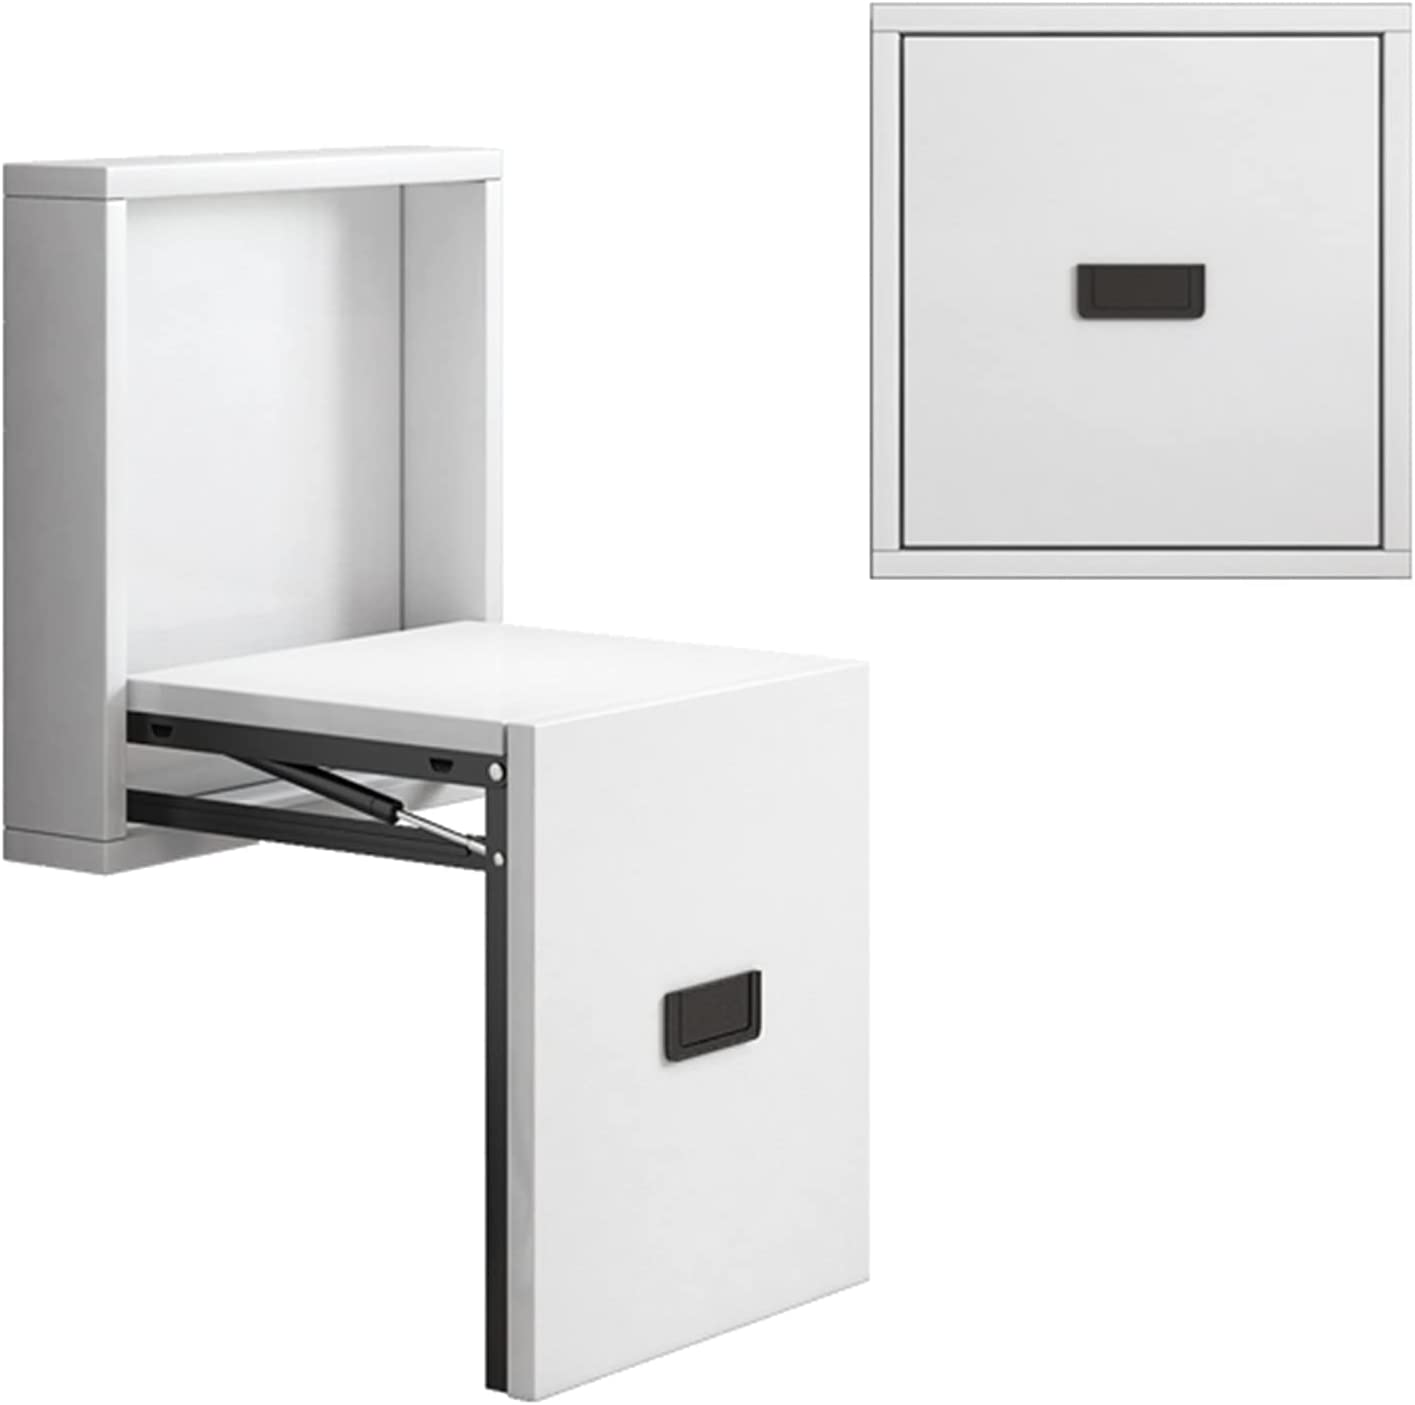 Folding Stool Wall-Mounted Table for Recommendation Wall Factory outlet Corn Corridor Doorway